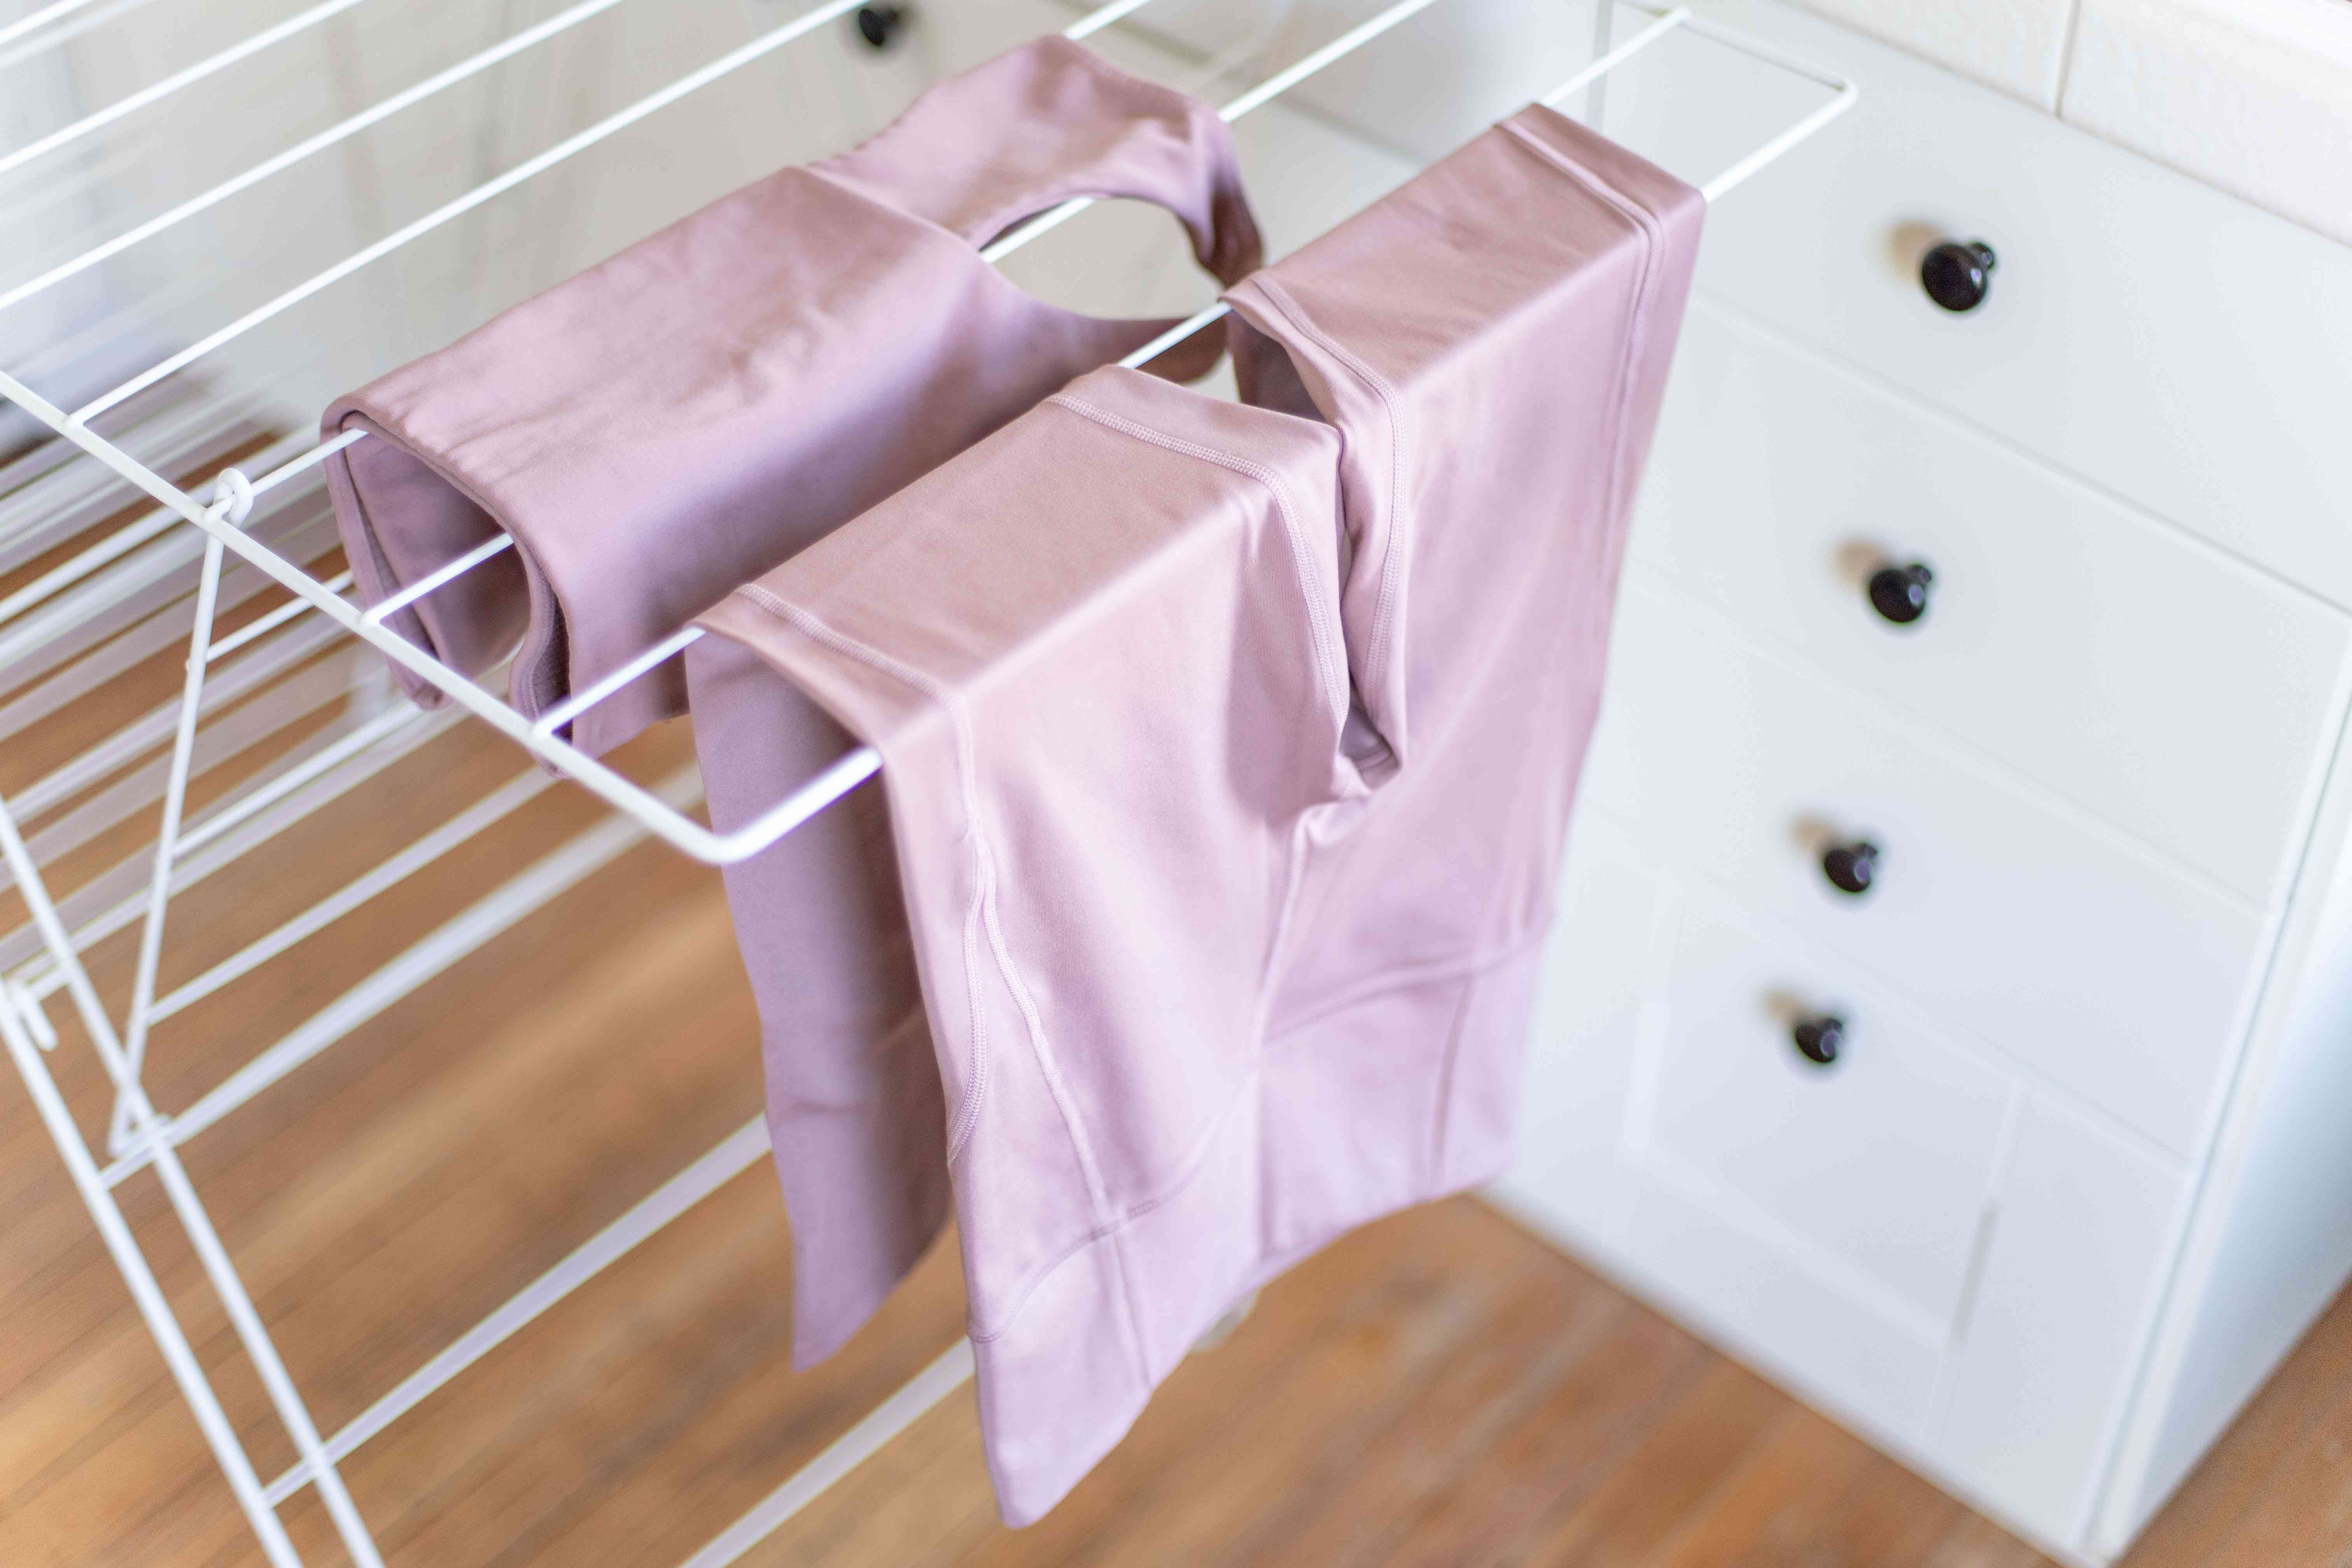 Workout clothes on a drying rack